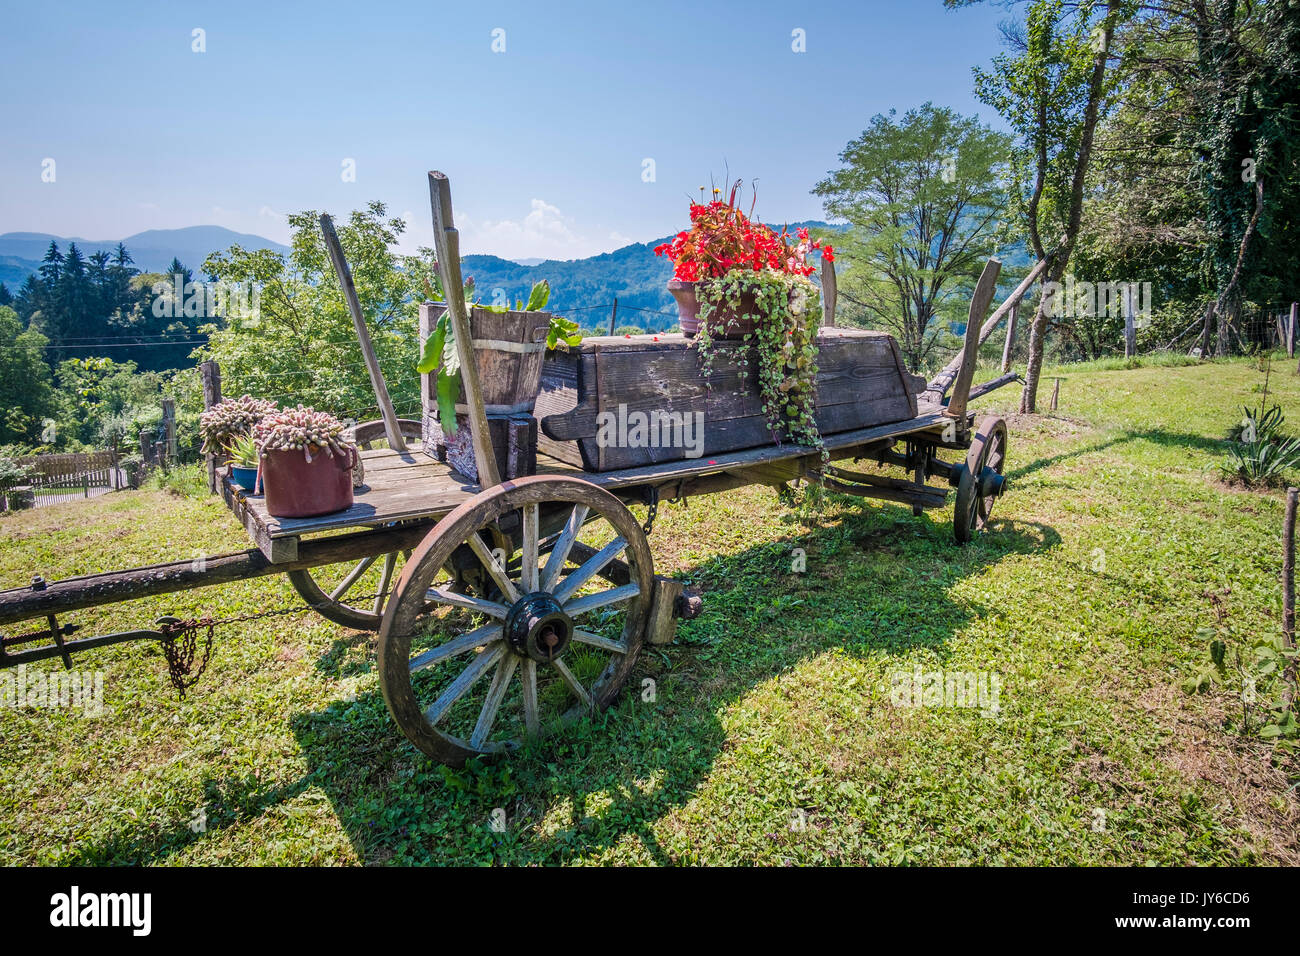 Old cart used as decoration in the garden Stock Photo: 154420146 - Alamy